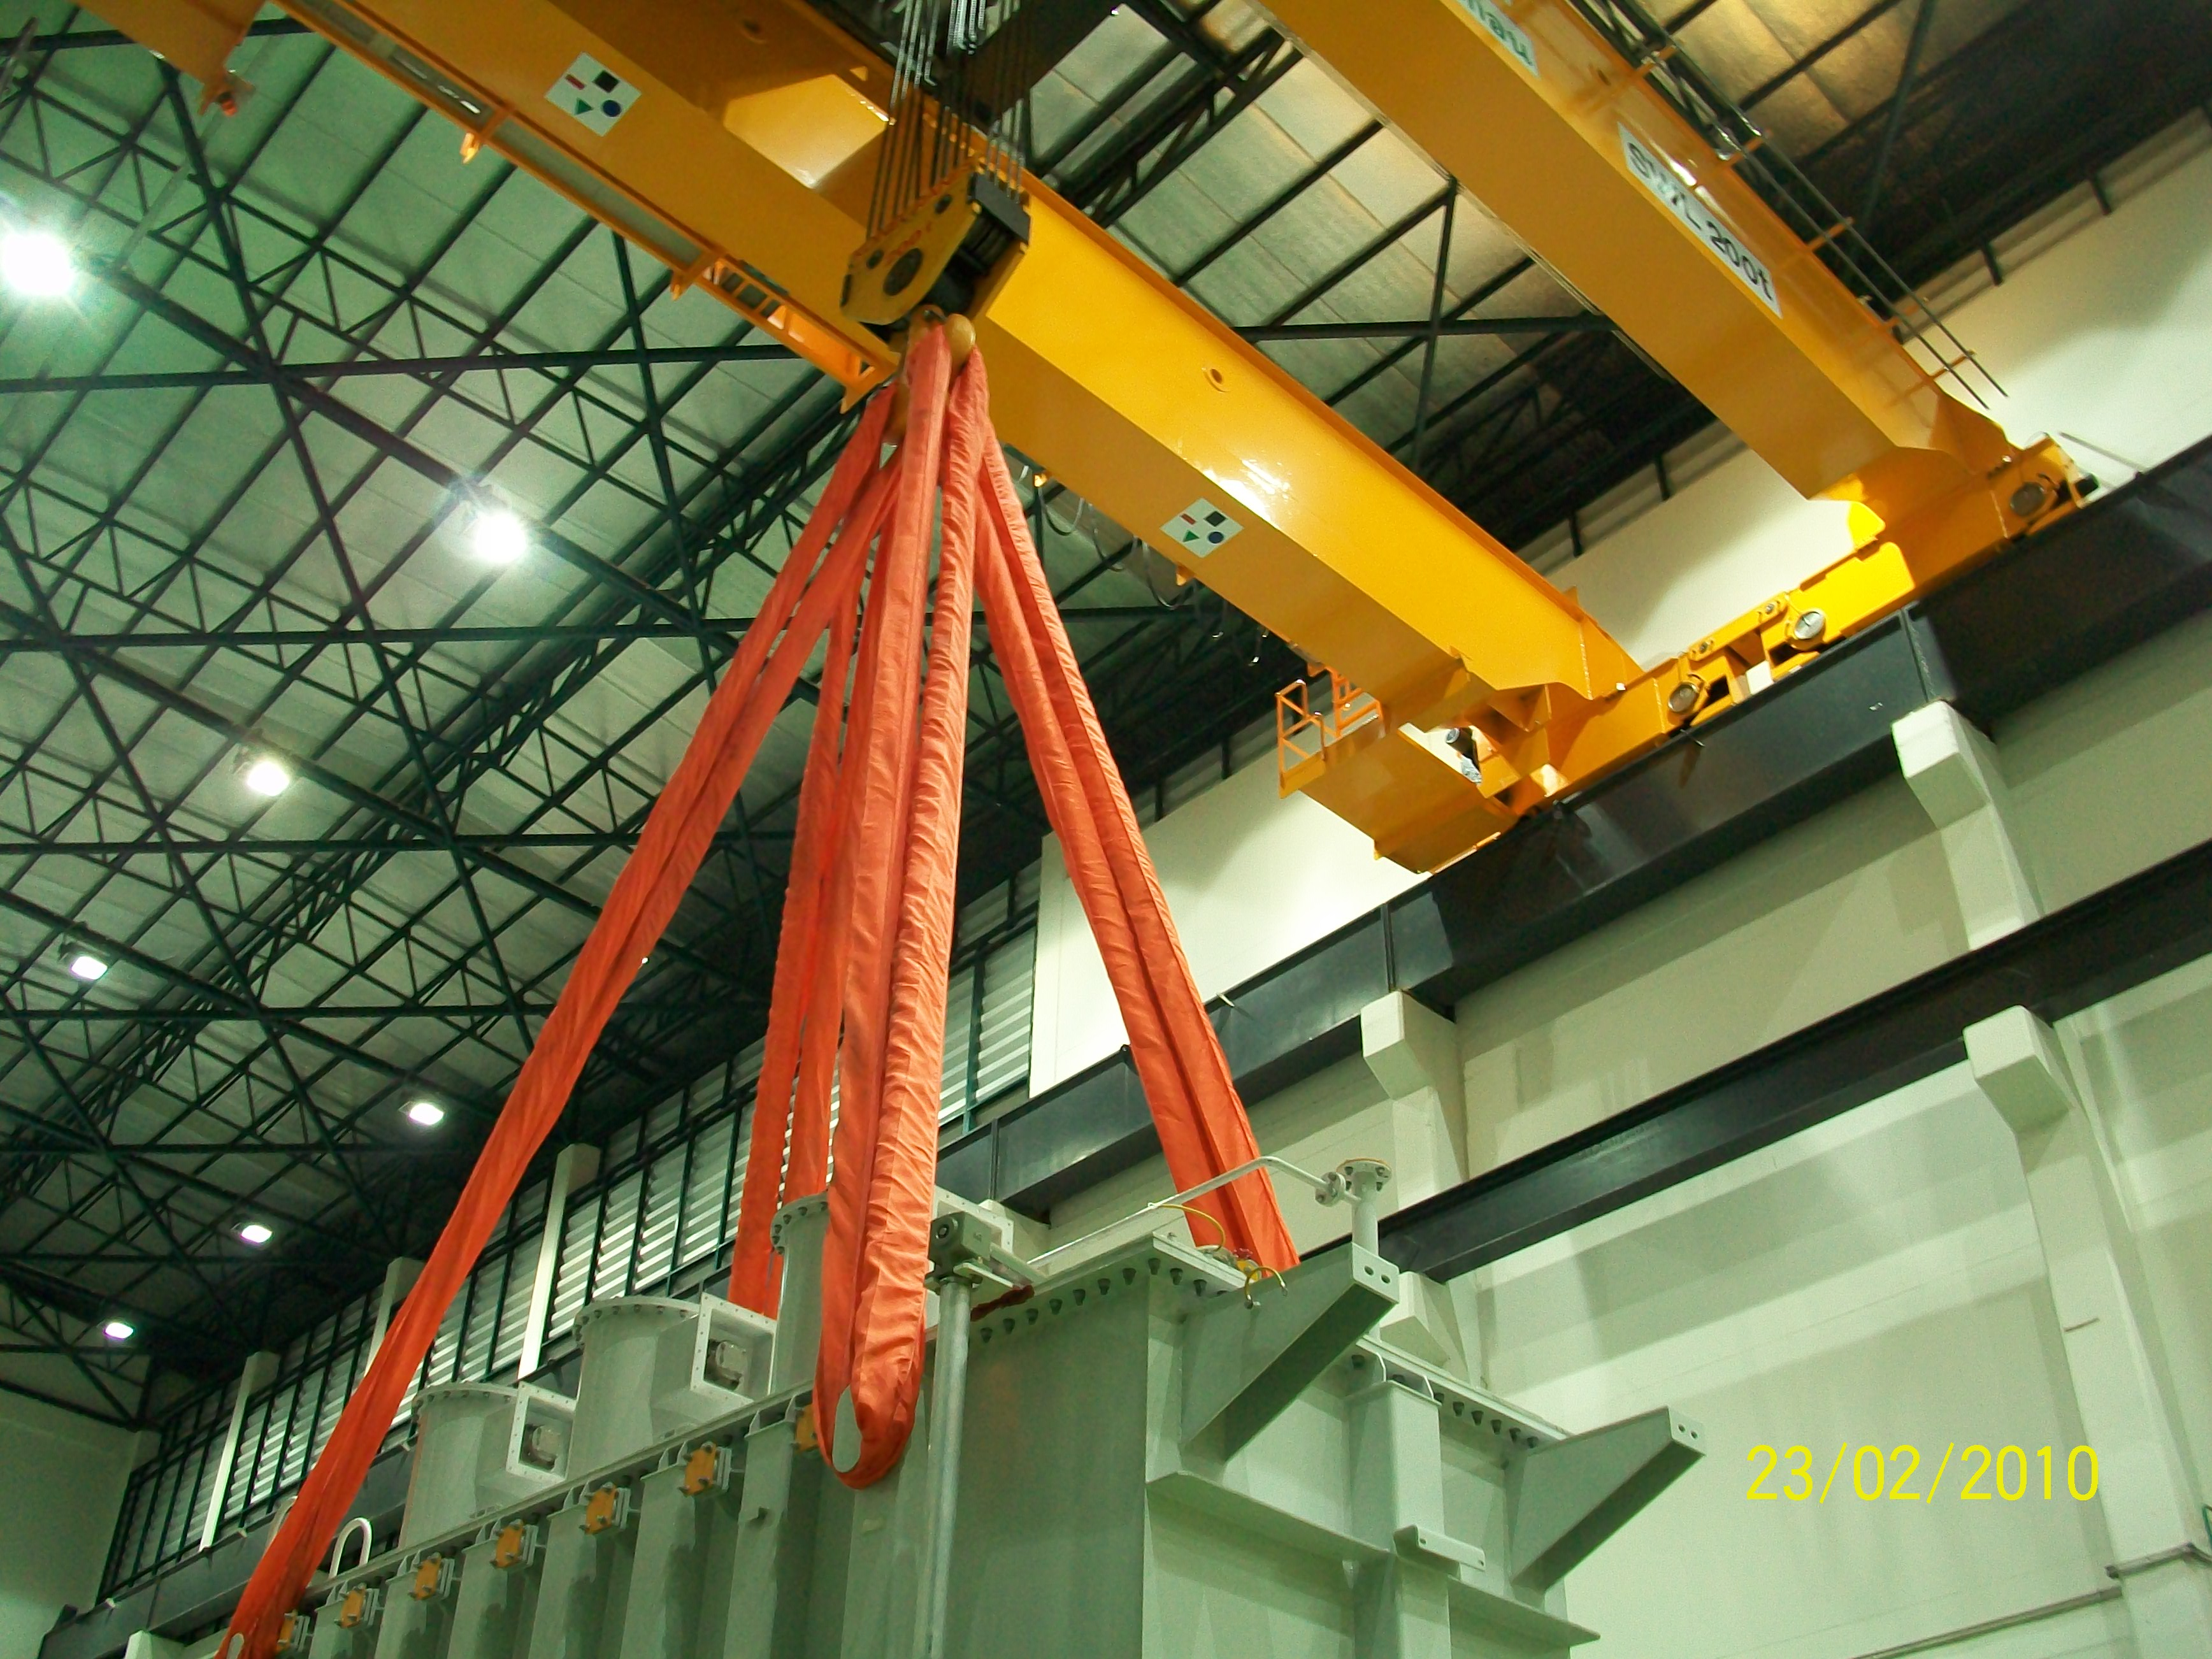 Hoist & Crane Lifting equipment